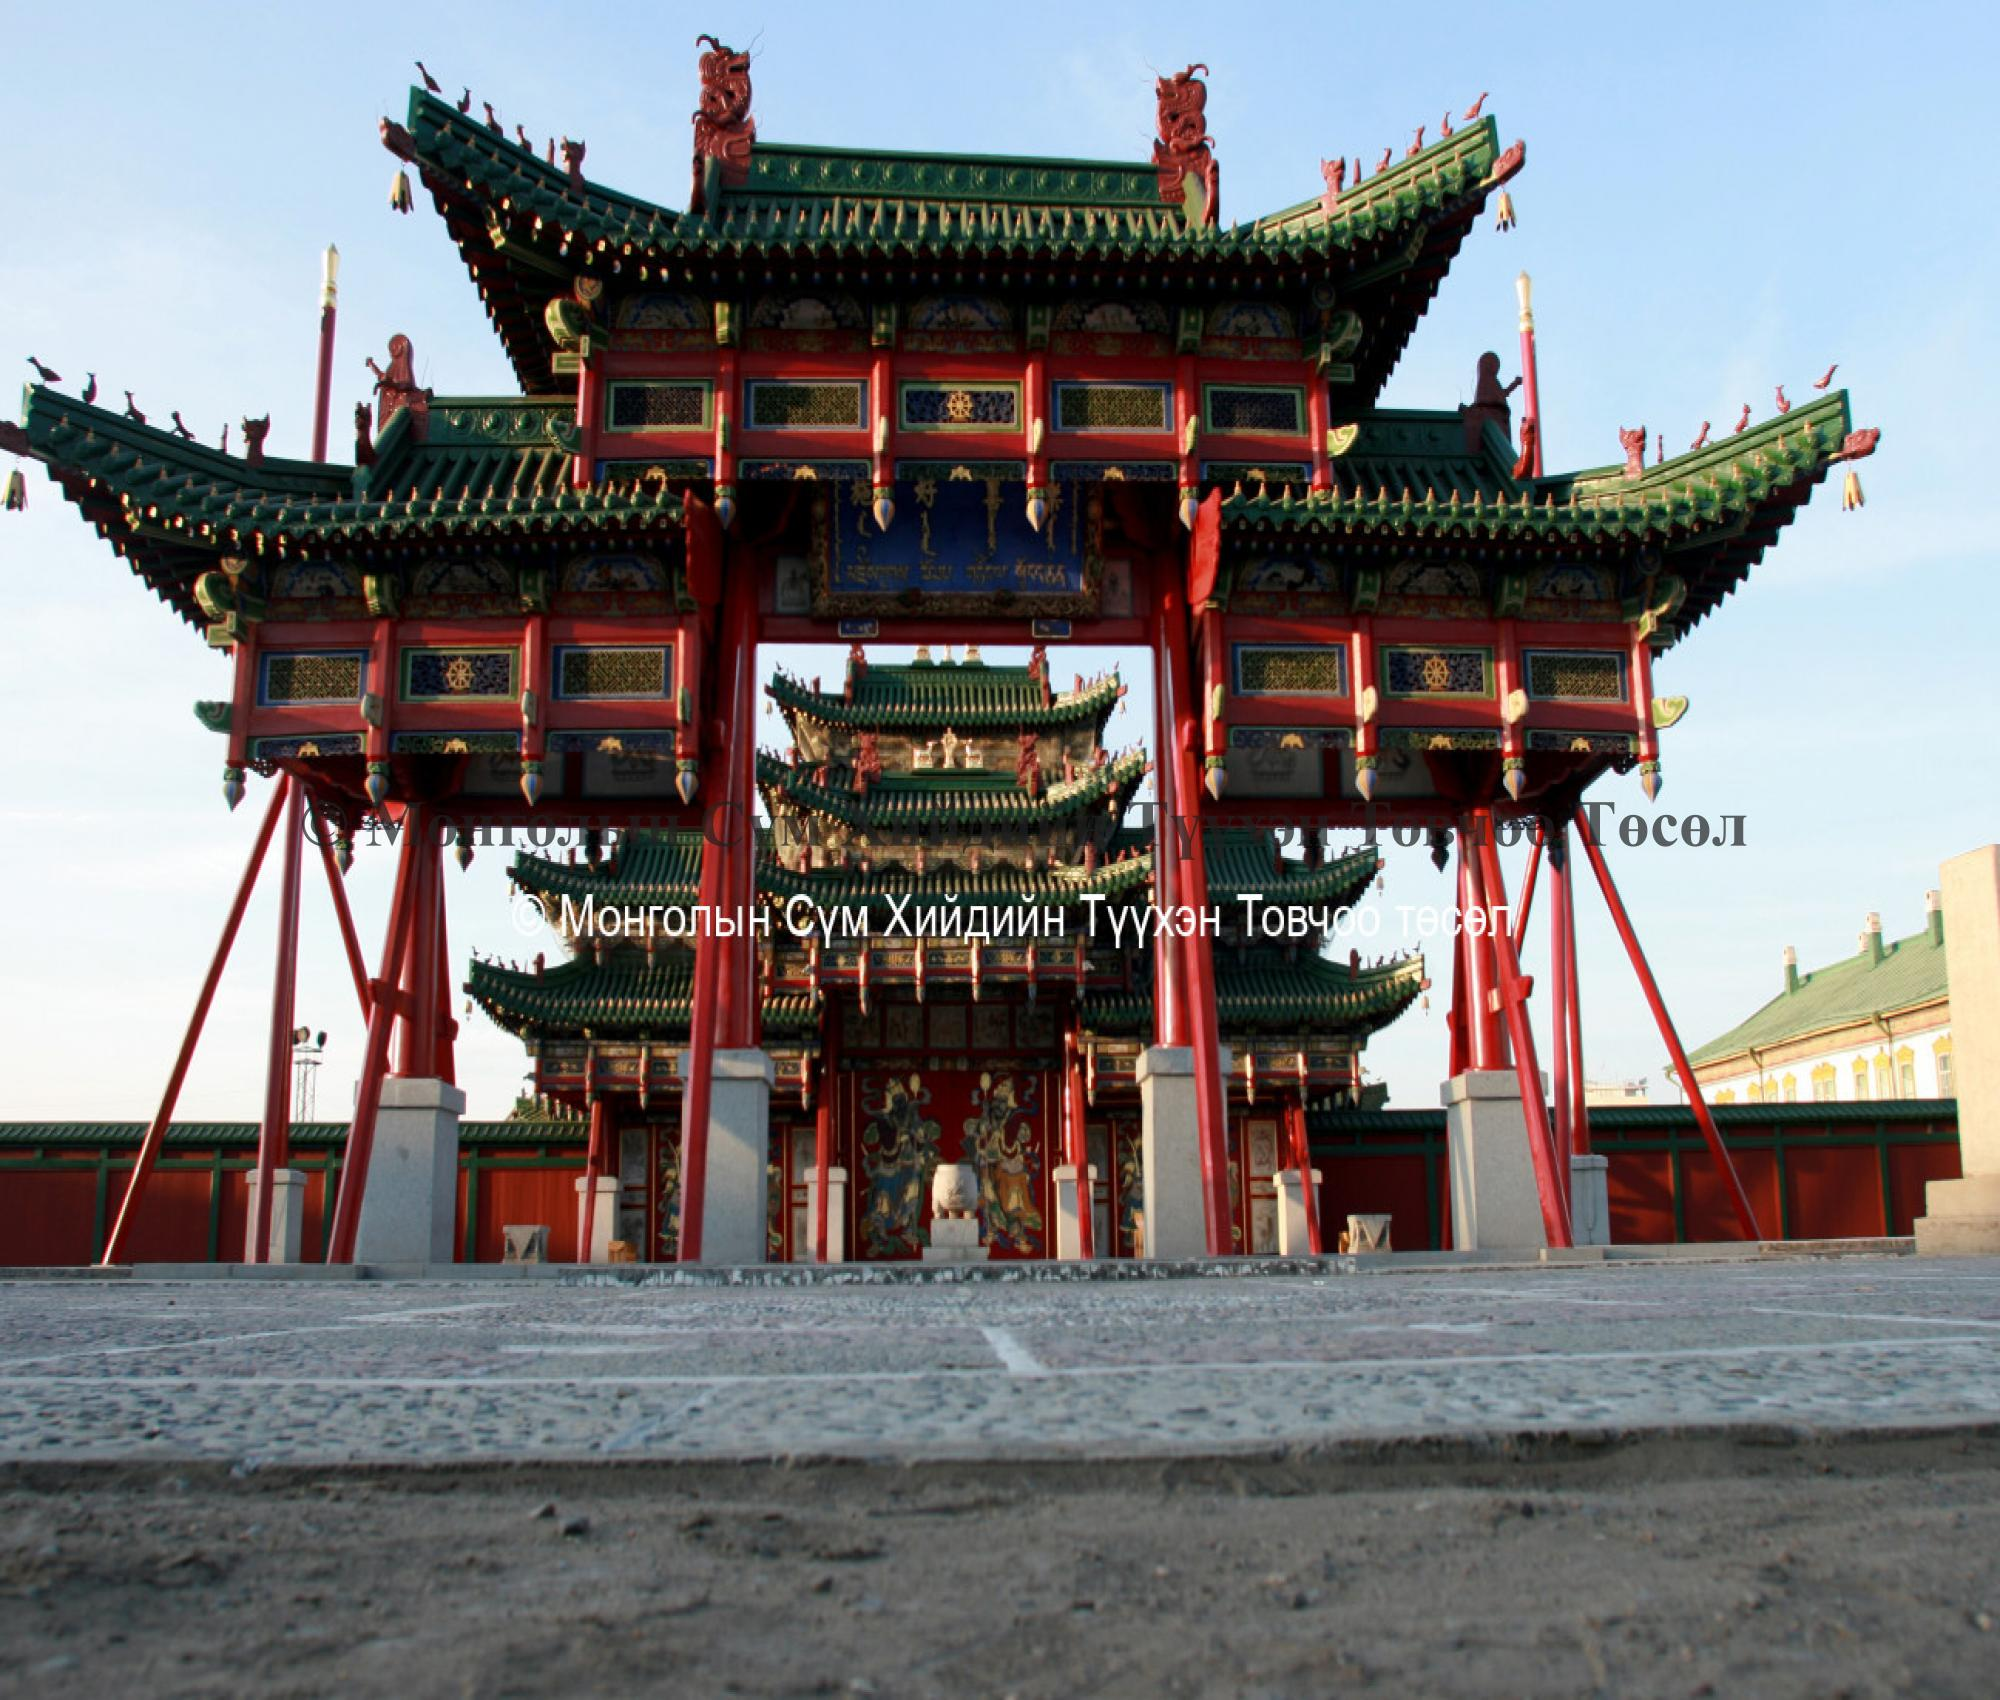 The Andinmen gate and the main gate 2007